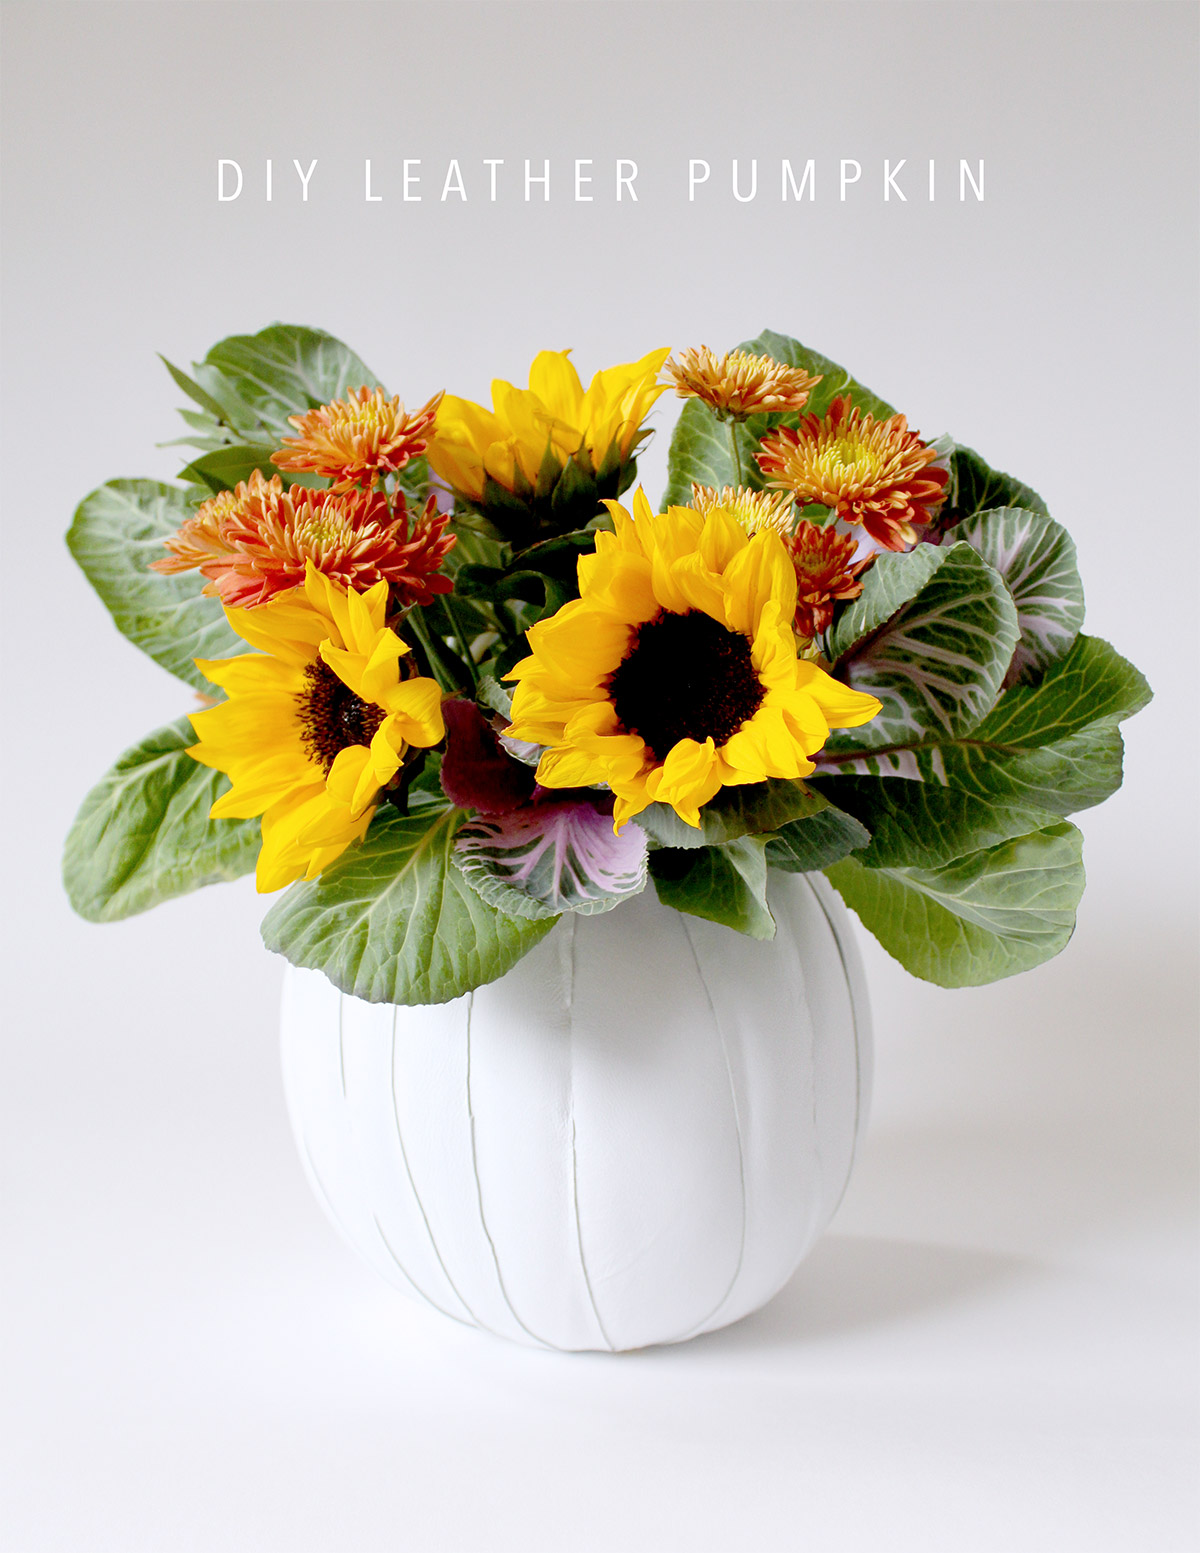 Leather Pumpkin DIY